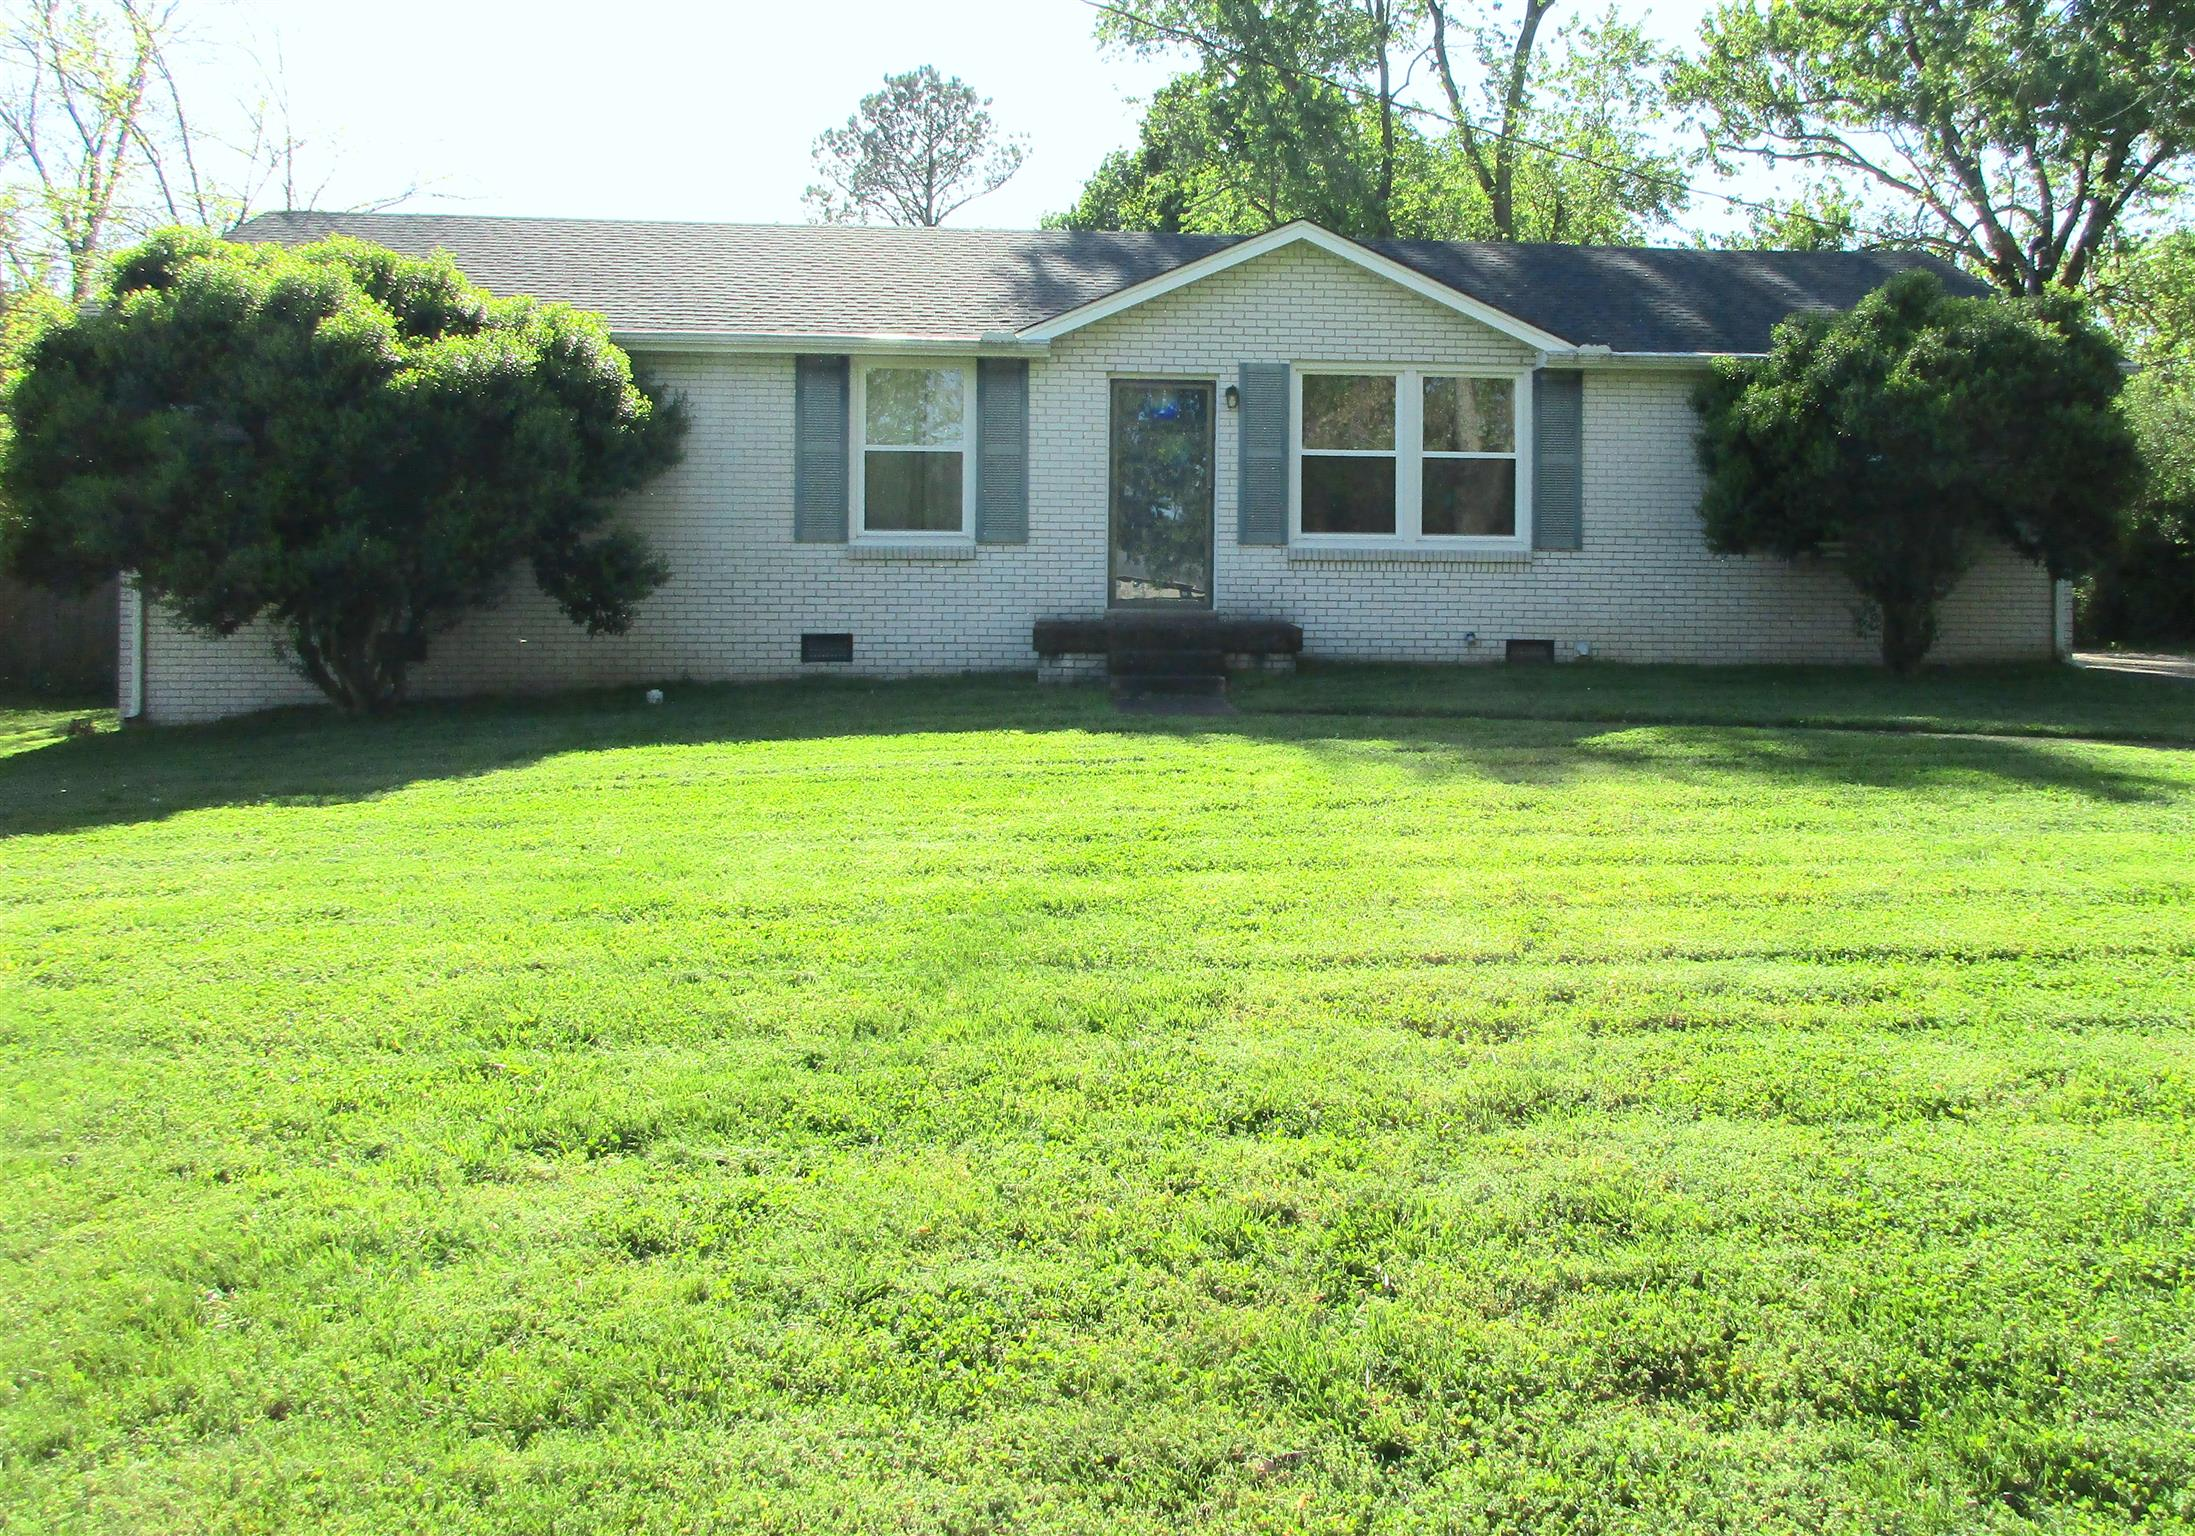 8217 Gordon Ln, Hermitage in Davidson County County, TN 37076 Home for Sale